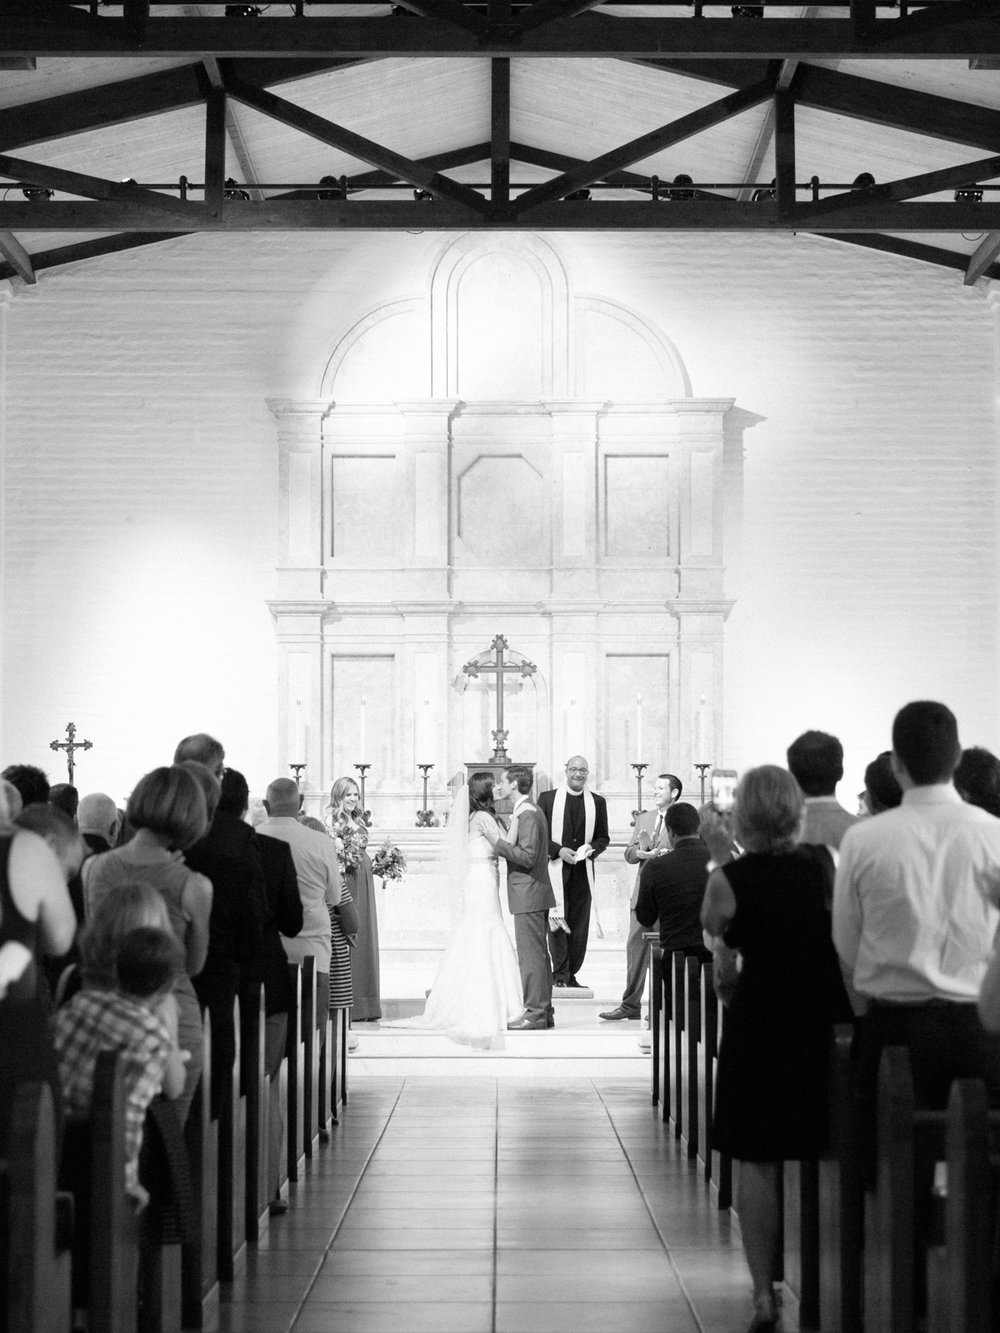 Christ Church of the Ascension wedding in Paradise Valley, AZ